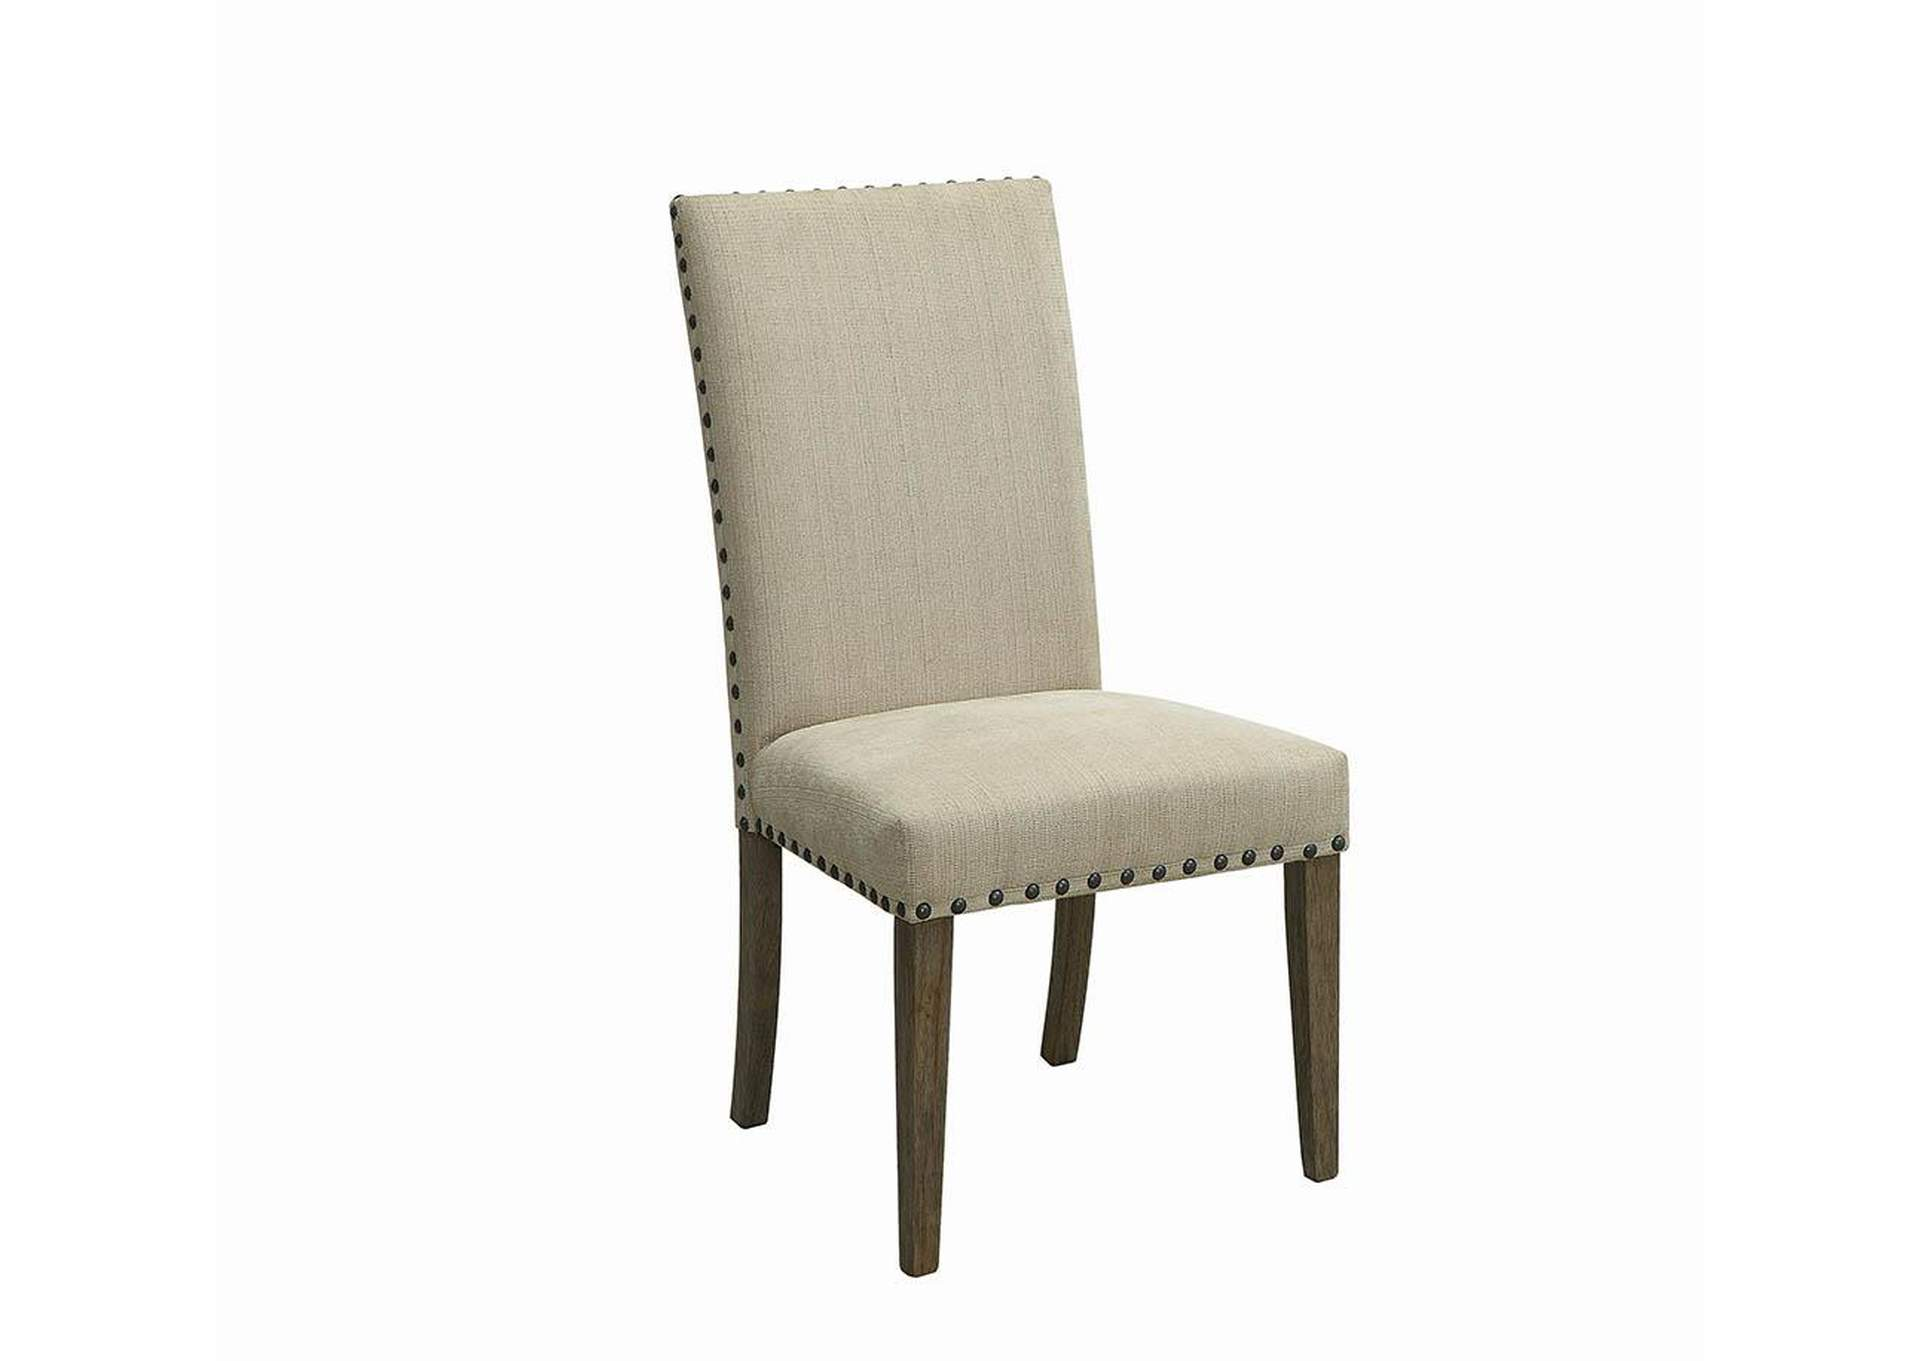 Phenomenal Furniture Expressions Fayetteville Ga Beige Dining Chair Home Interior And Landscaping Ologienasavecom